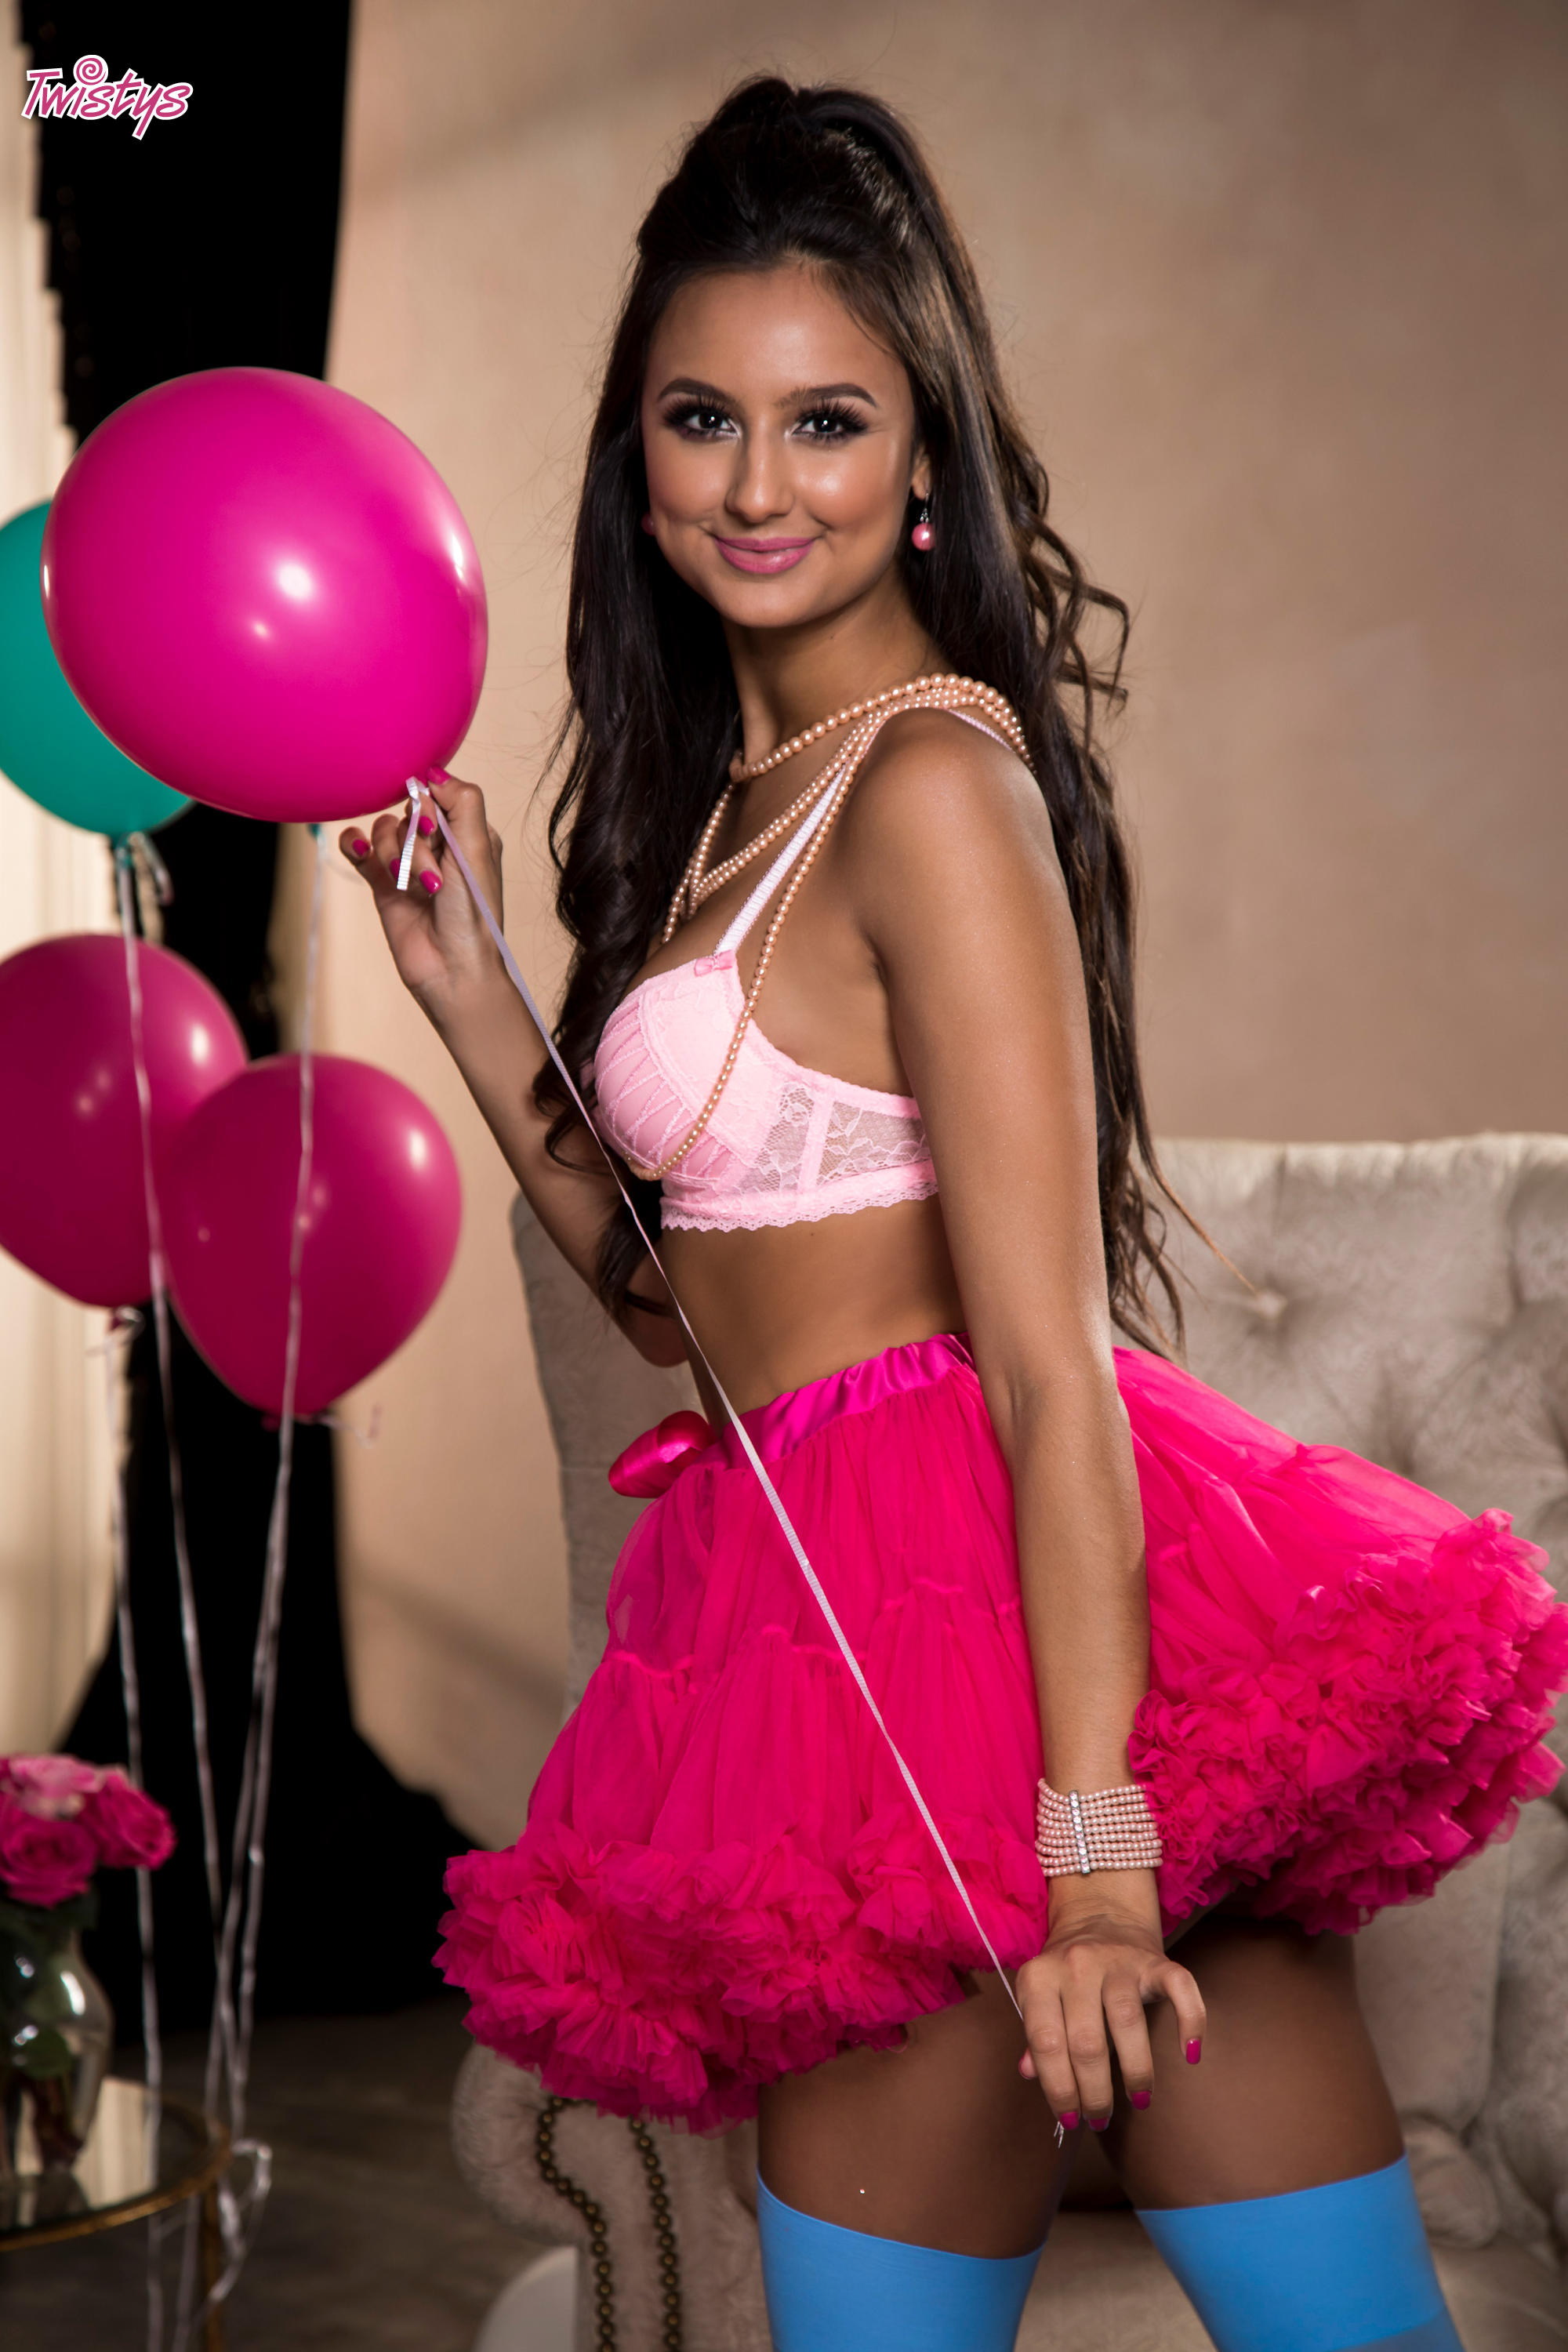 Twistys 'Balloons and Bubble Gum' starring Eliza Ibarra (Photo 8)